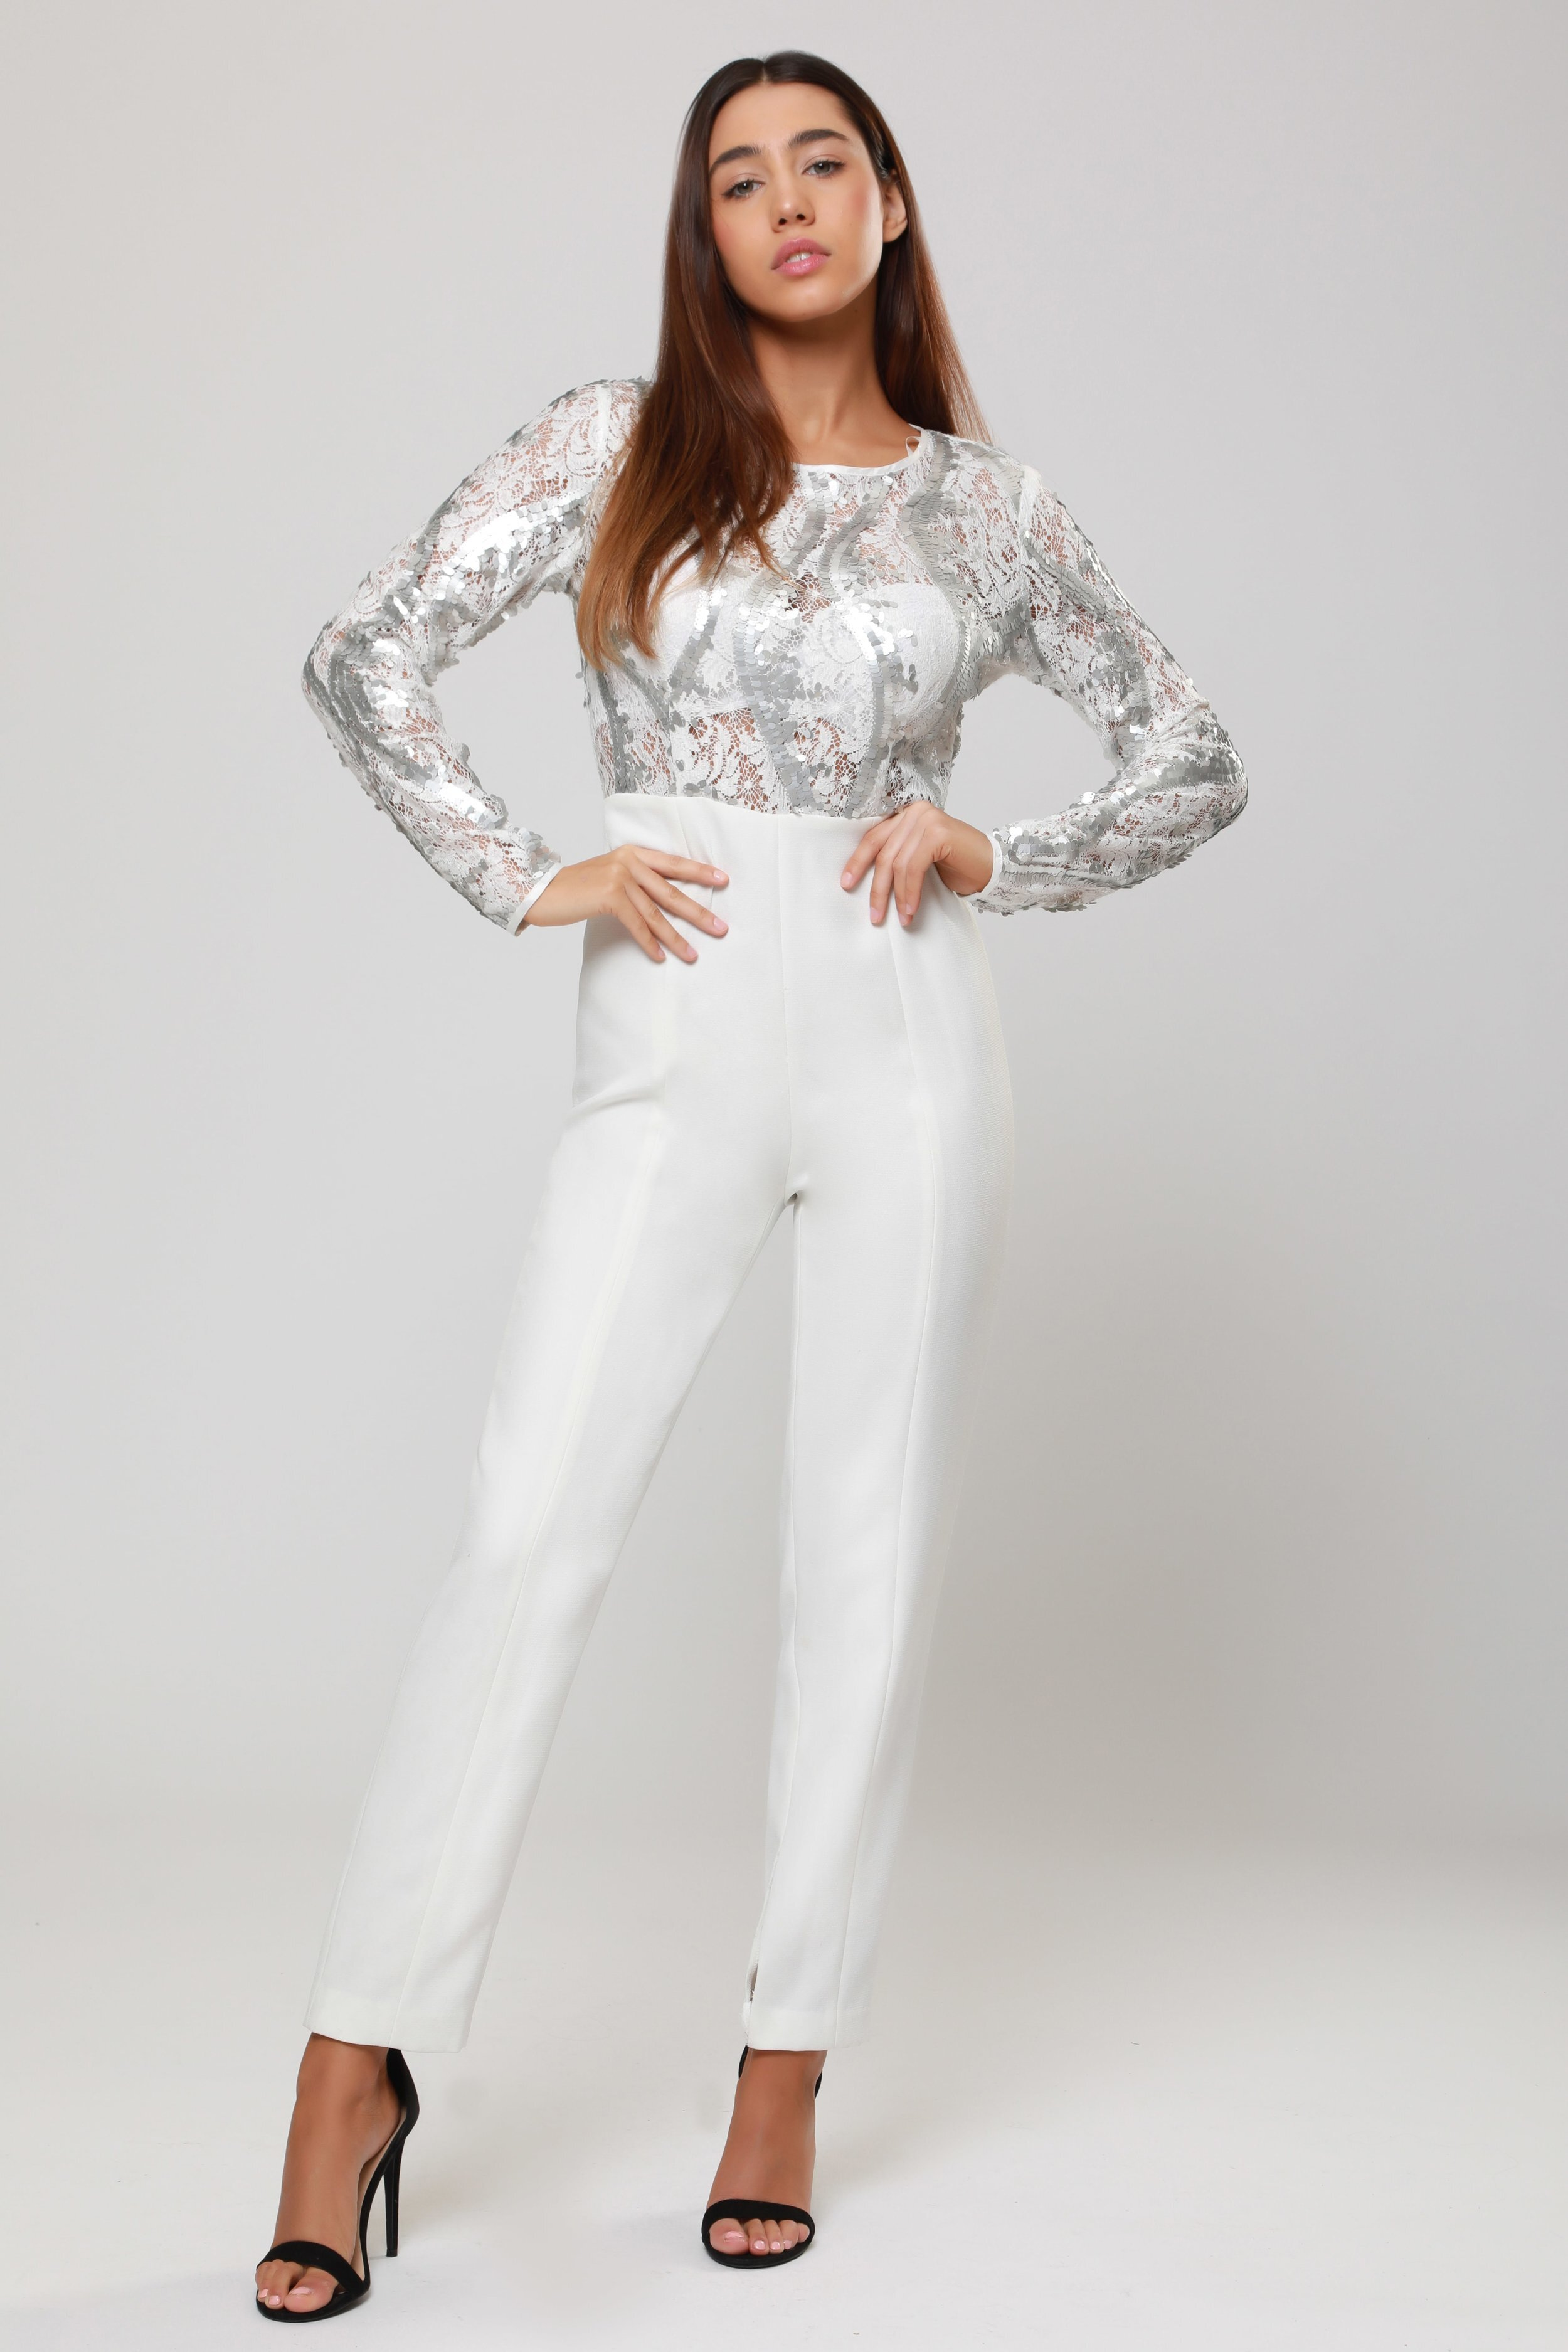 Sequin Top and Tailored  Trouser Jumpsuit   £75.00